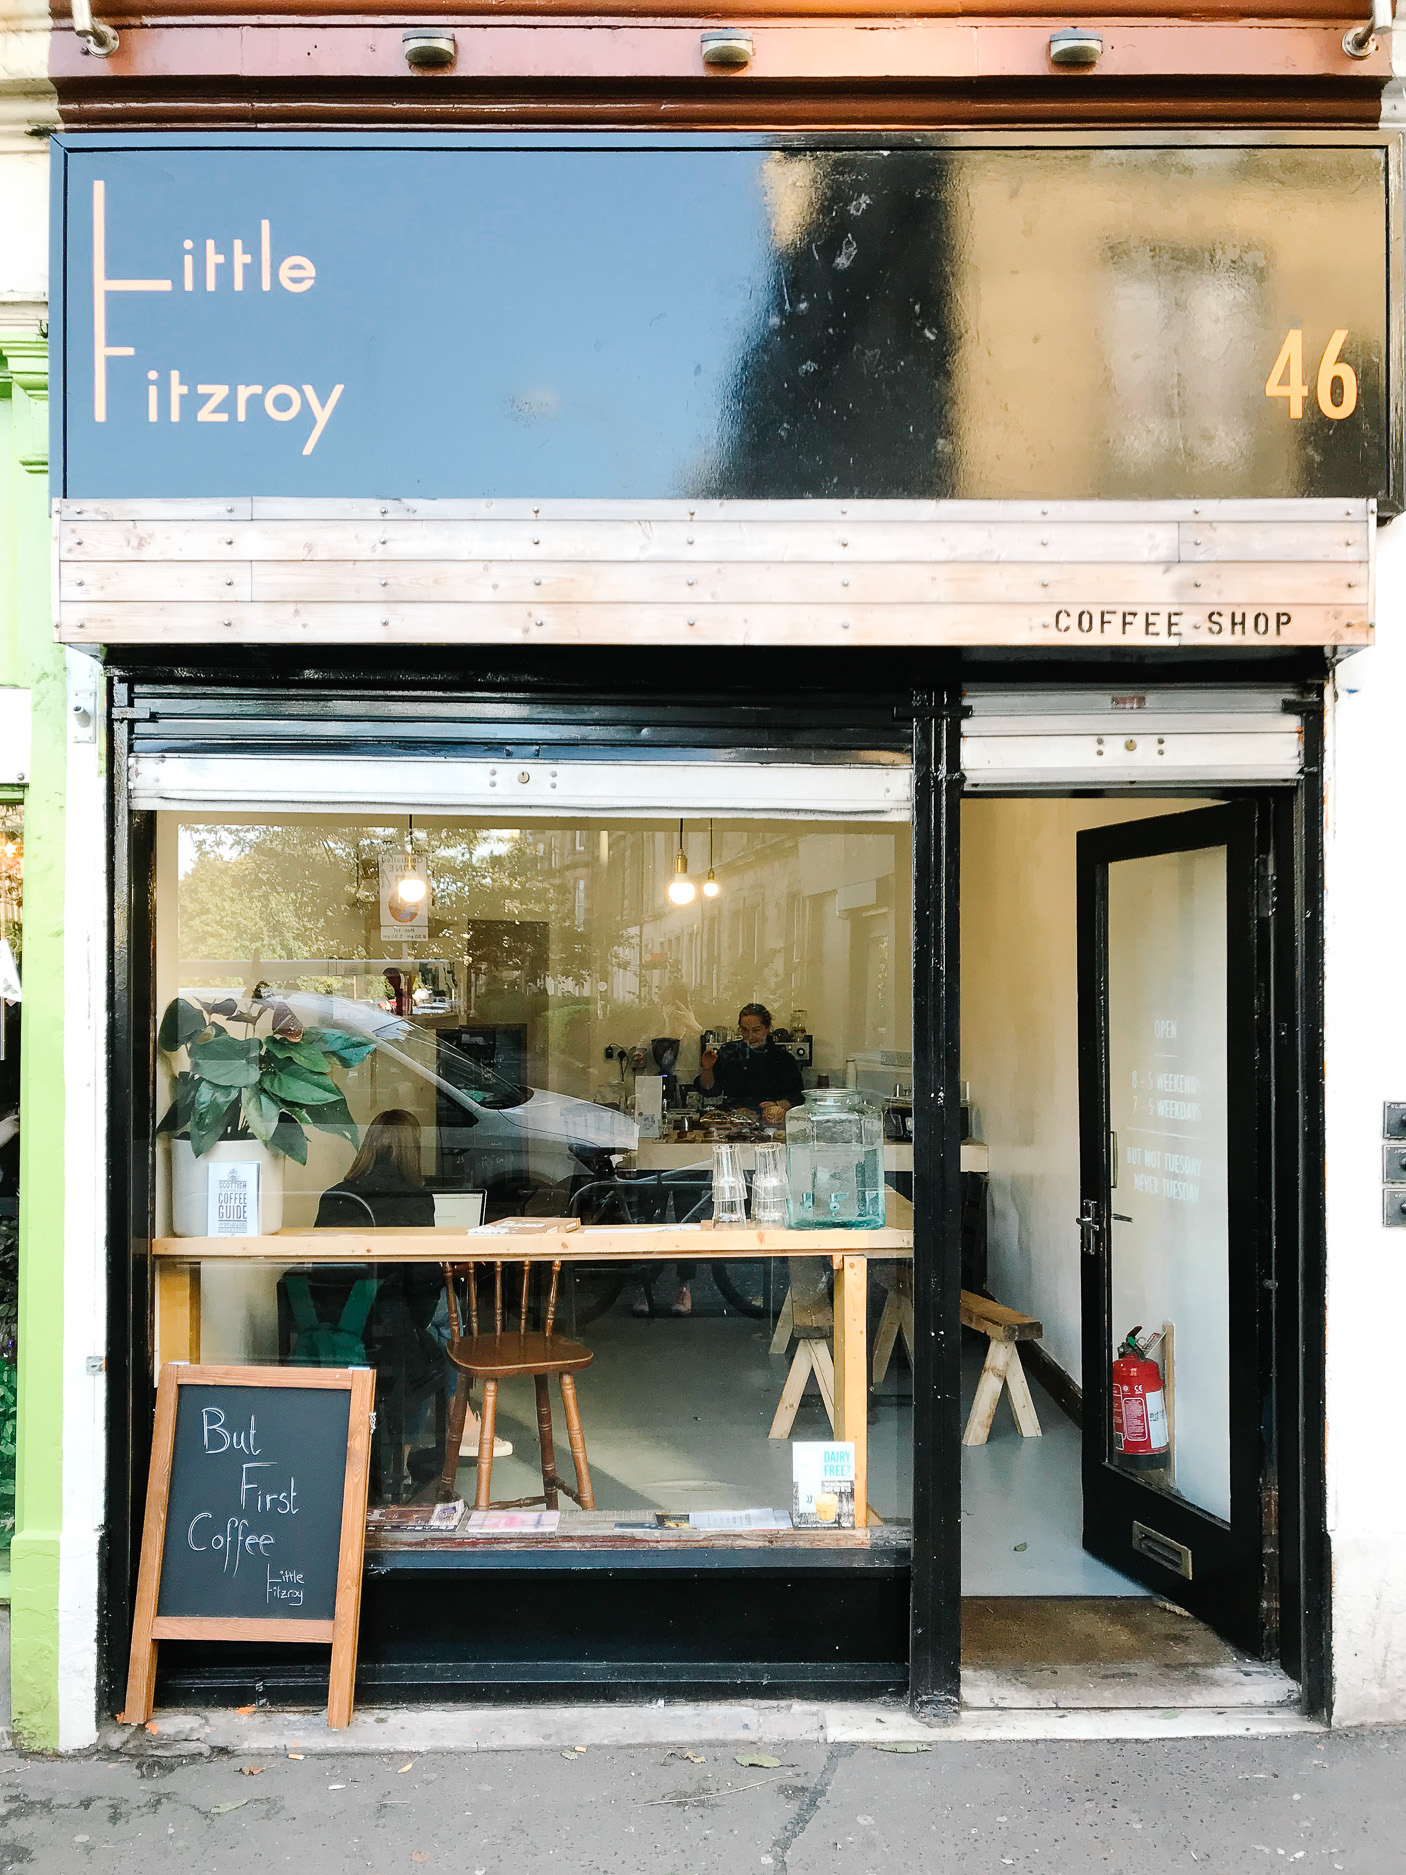 Little Fitzroy coffee shop Edinburgh